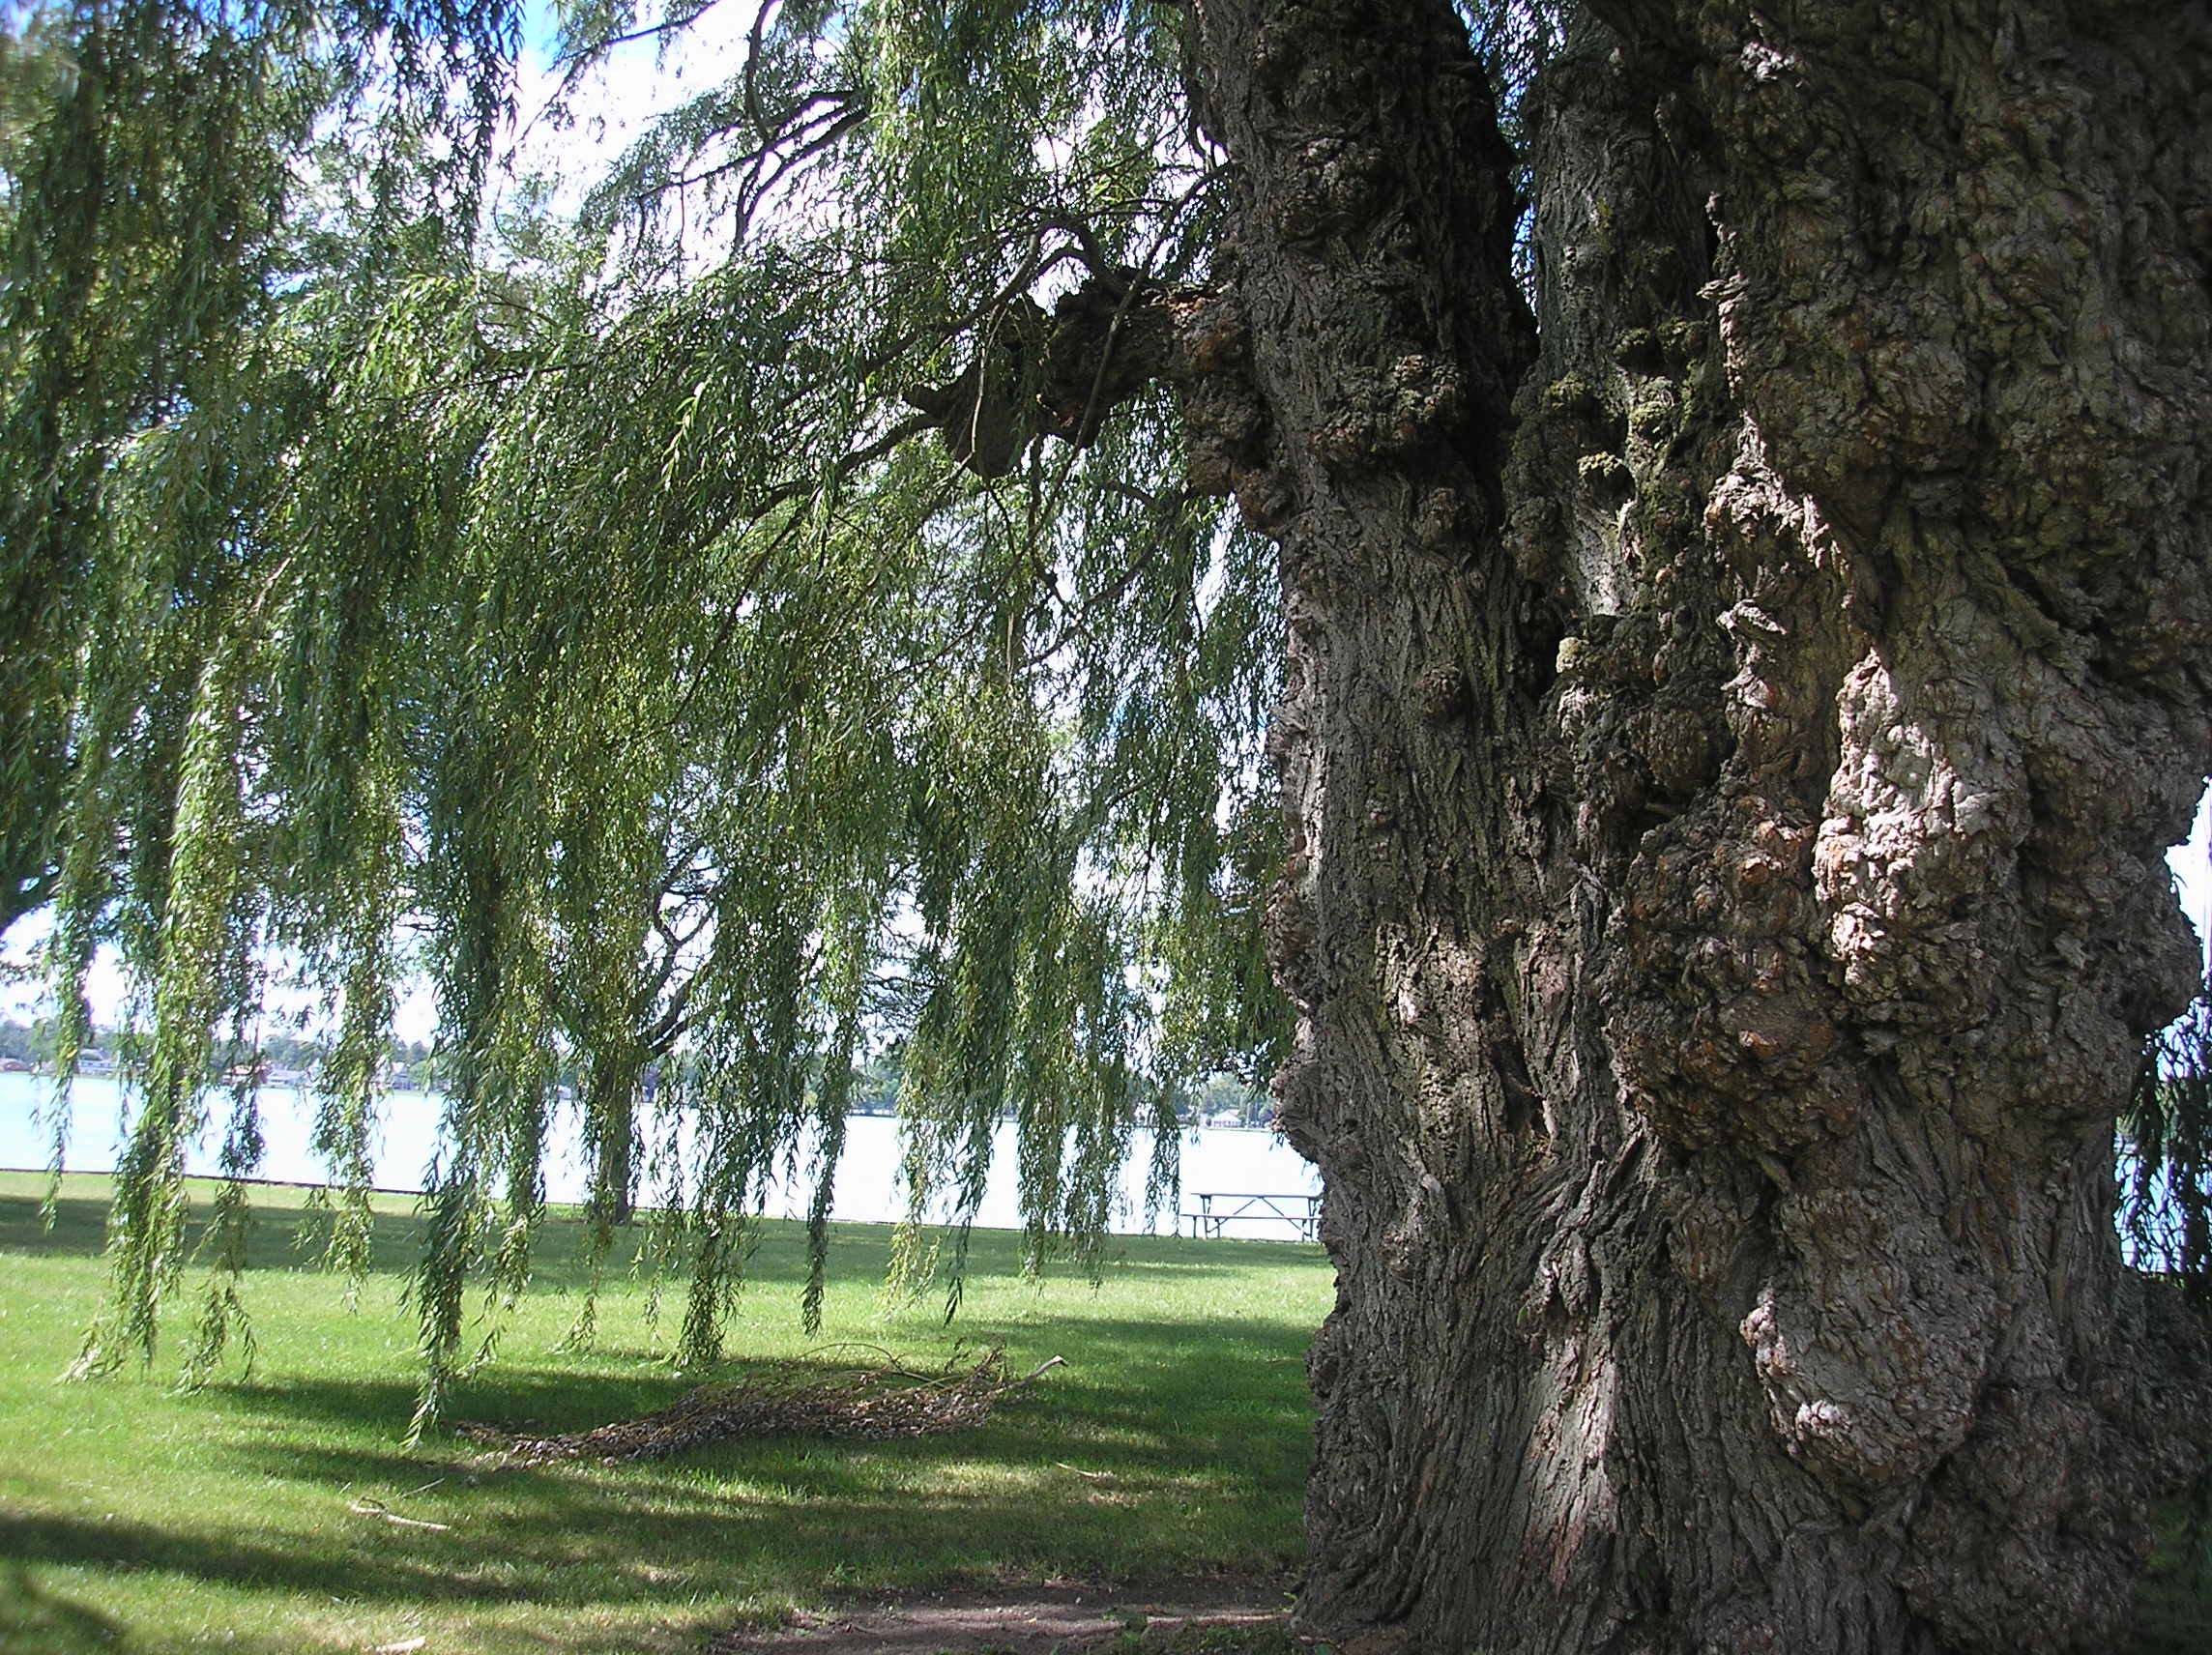 Downriver park - willow tree